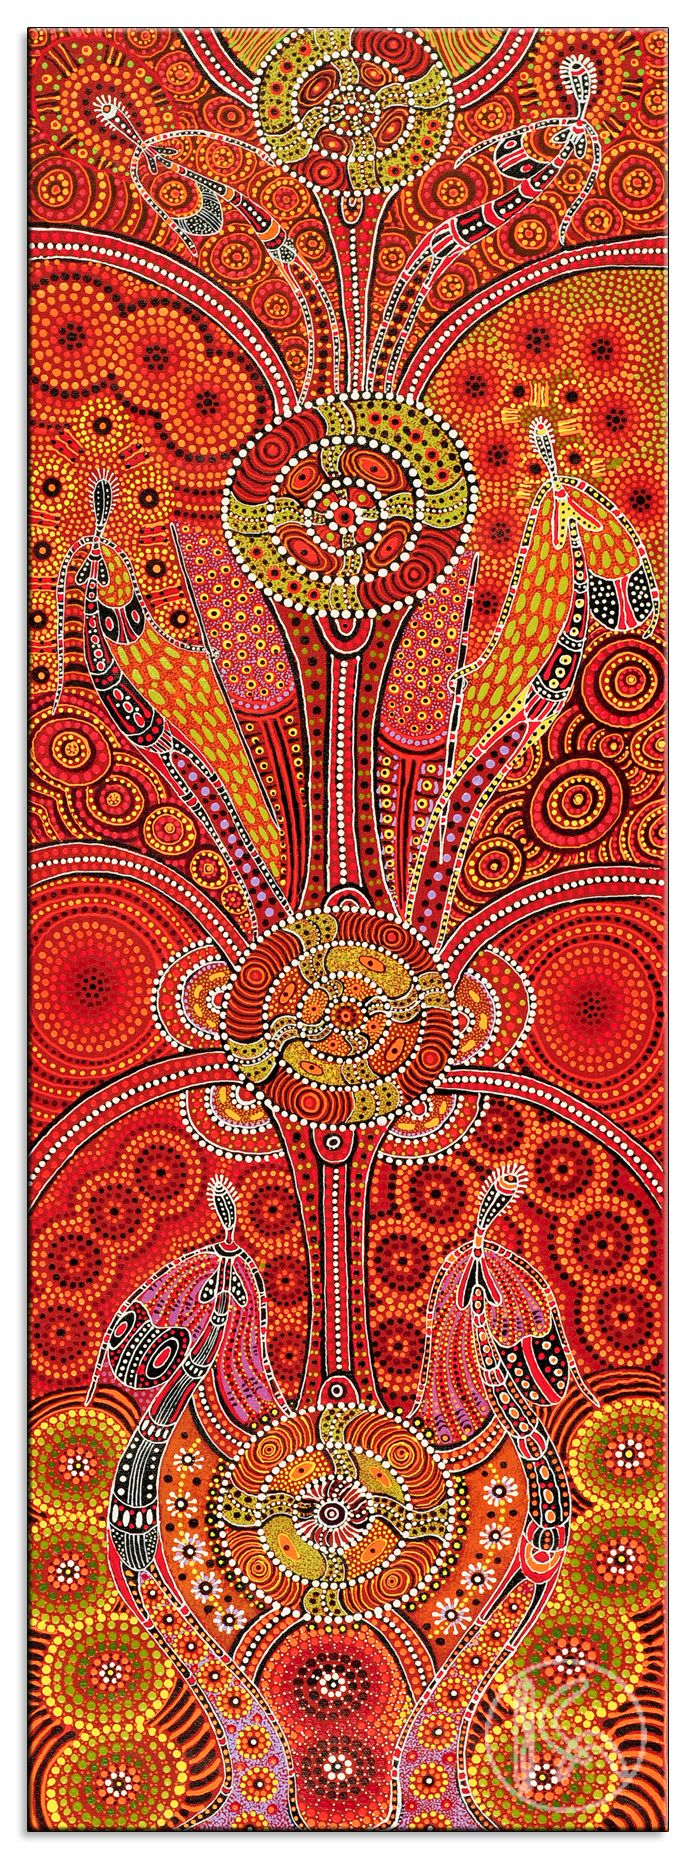 Dreamtime Ladies - Kathleen Wallace